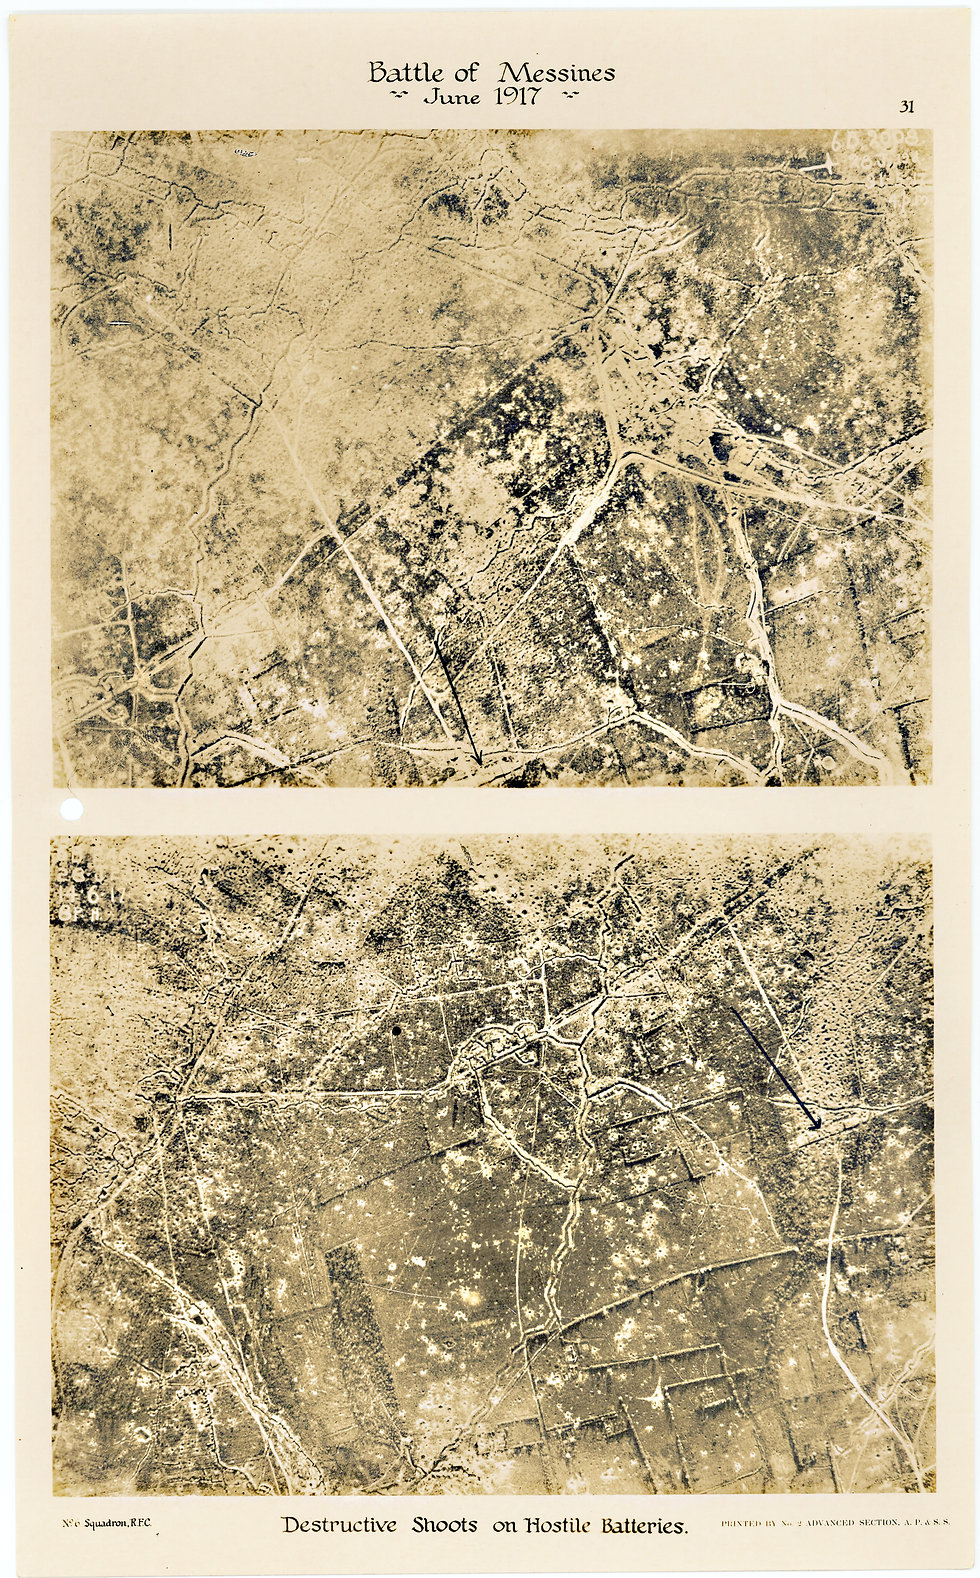 6 Squadron aerial photos of destructive shoot east of Hill 62, taken by 6 Squadron before and after the Battle of Messines, 1917